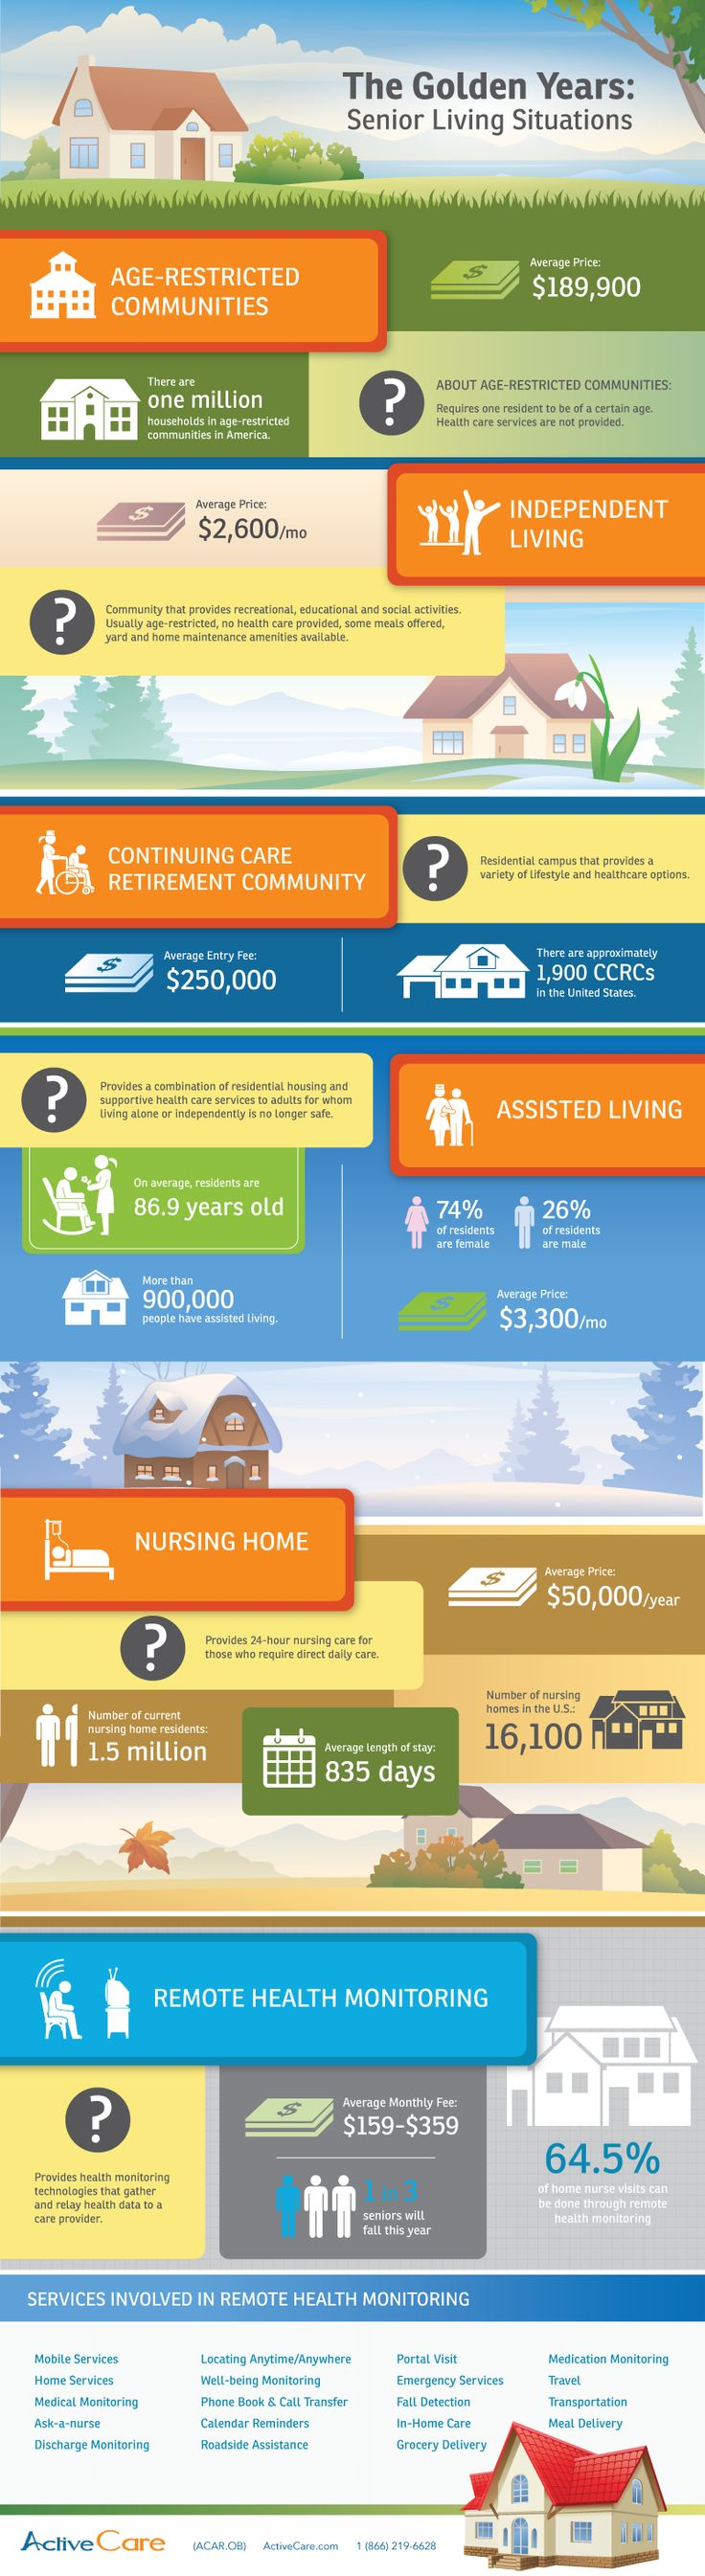 Senior Living Situations - Infographic - home care, independent senior living, assisted living, nursing home